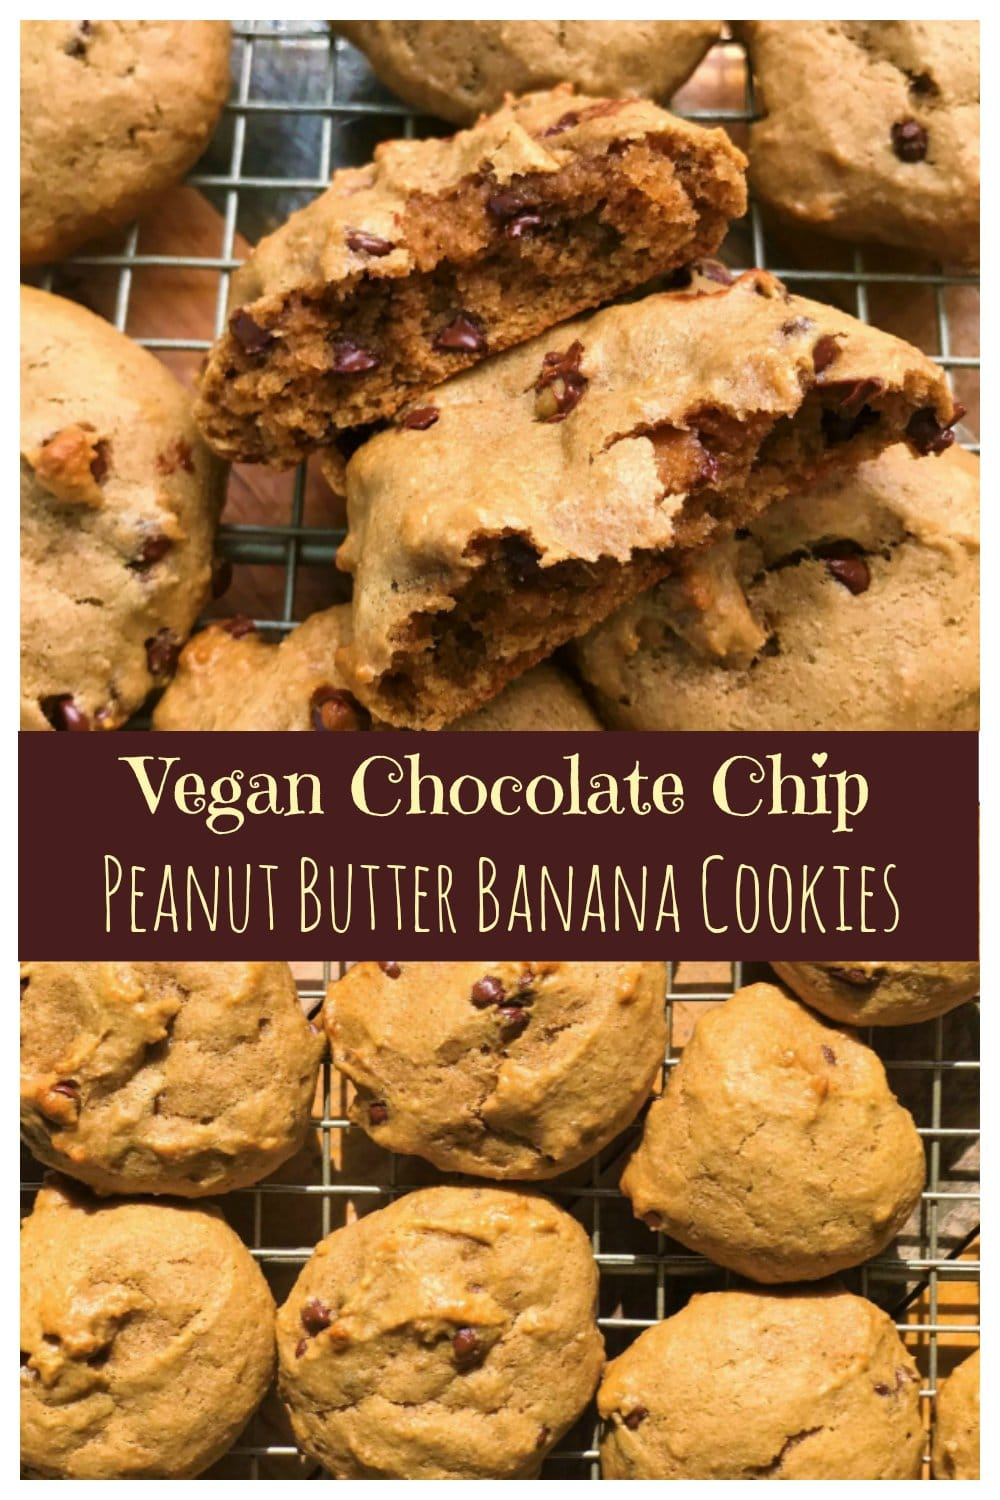 Vegan Chocolate Chip Cookies with Peanut Butter & Banana.